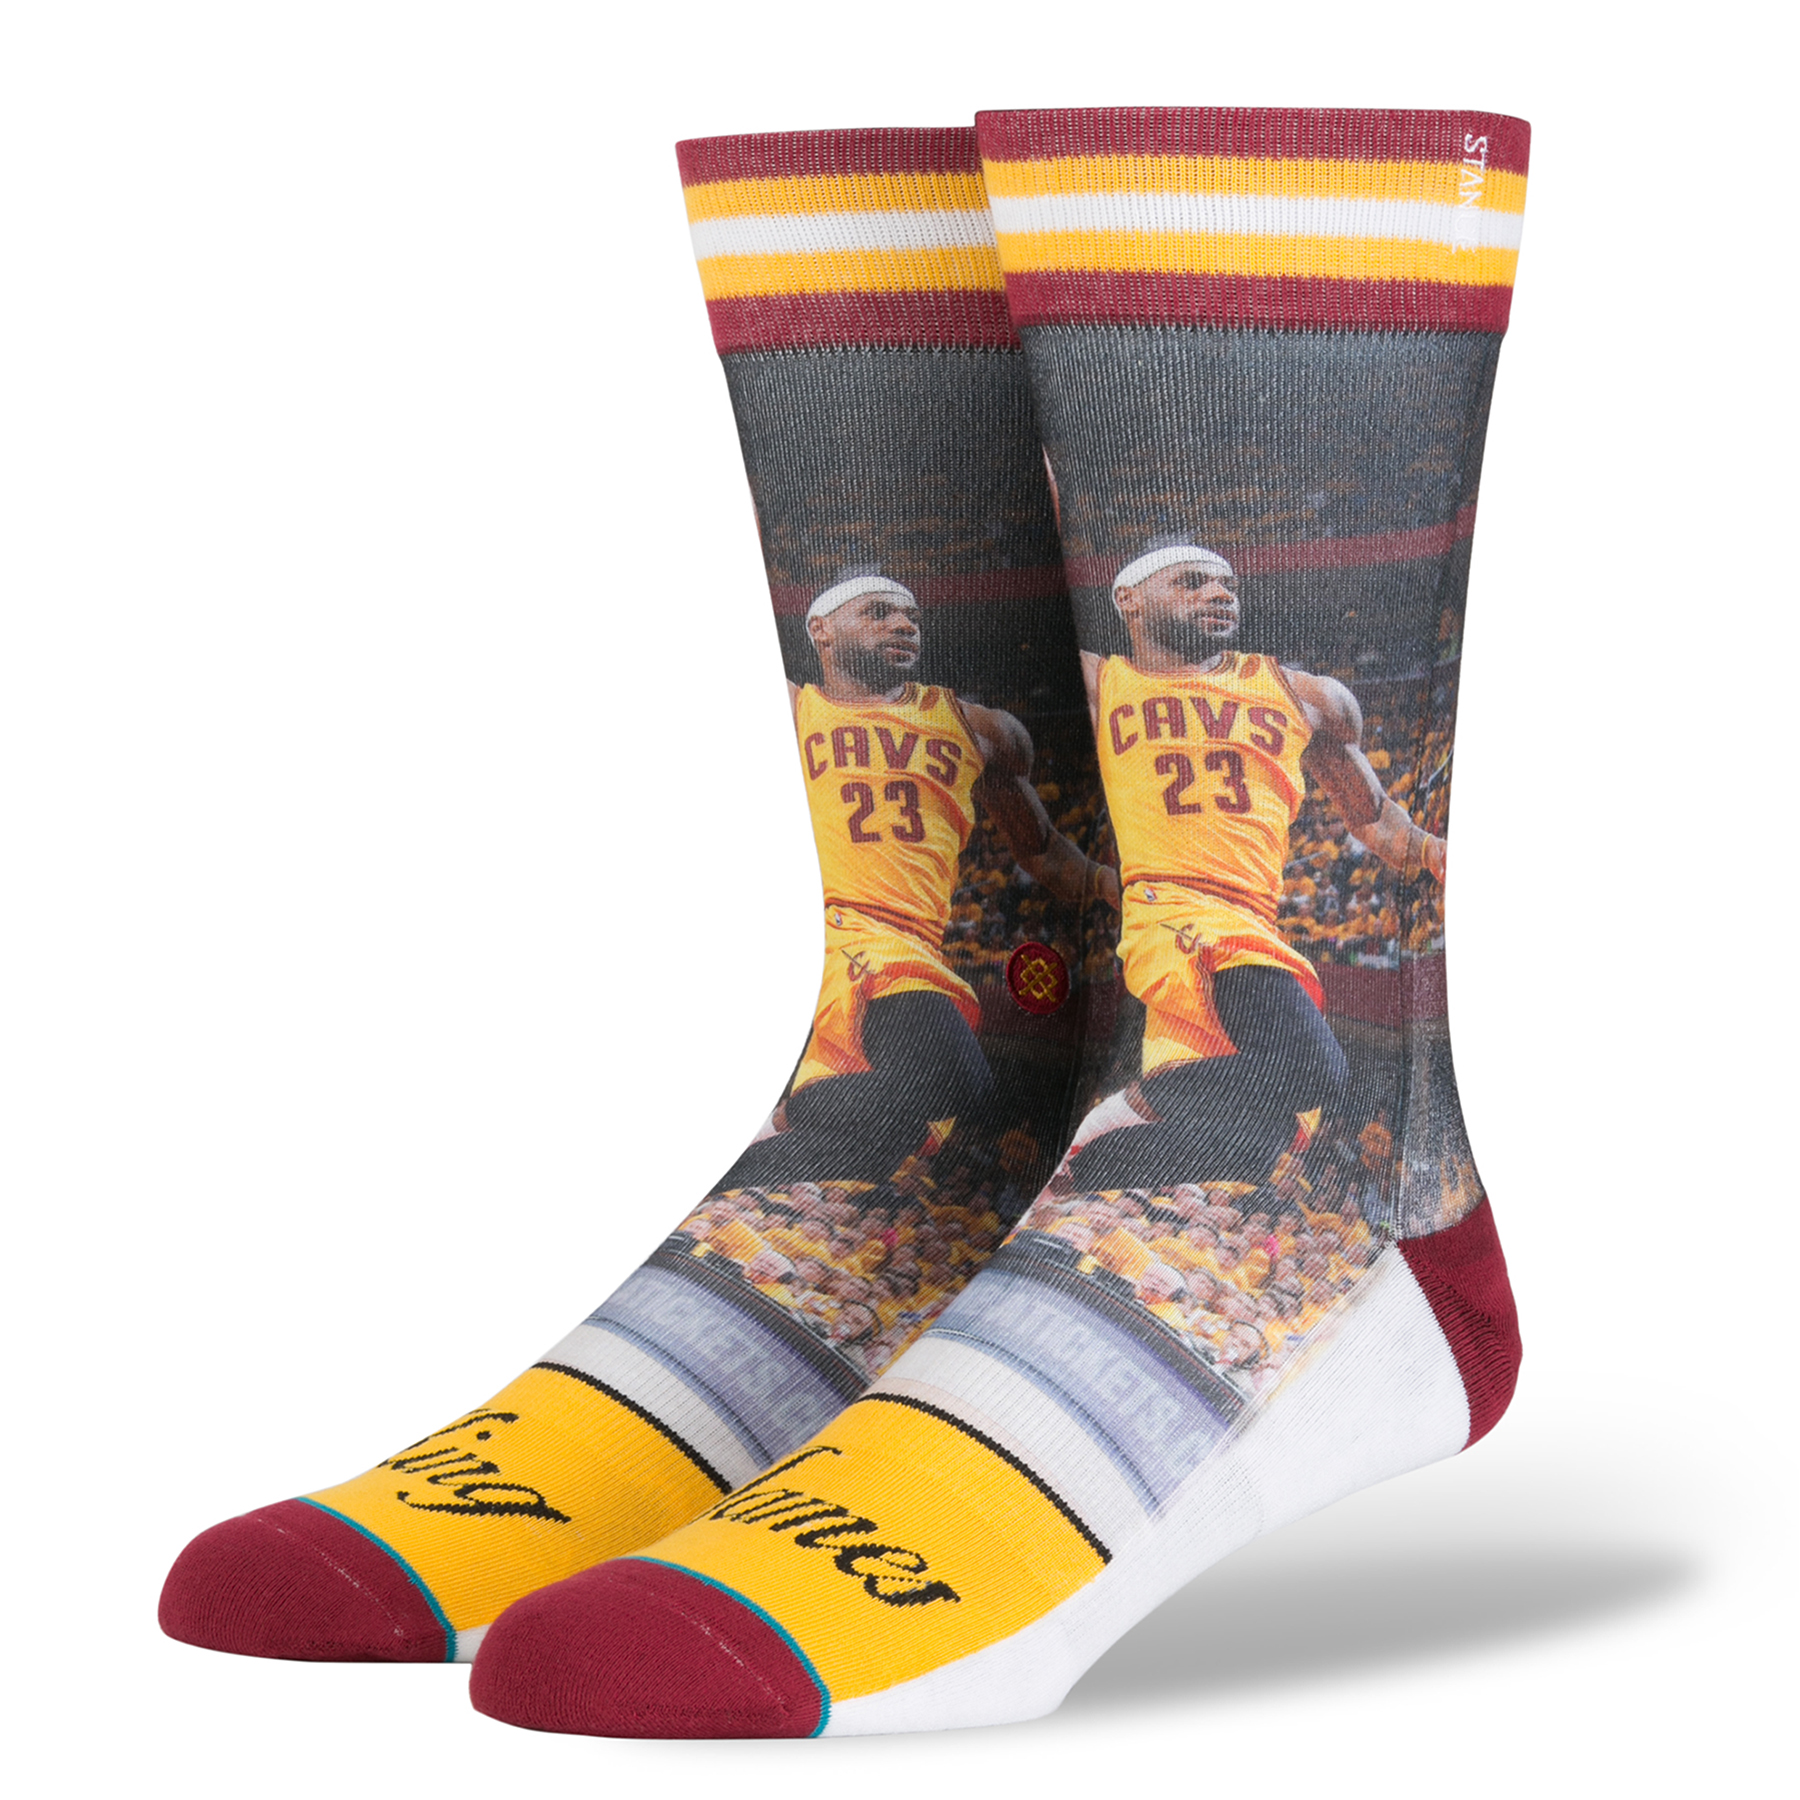 Cleveland Cavaliers Stance Player Crew Socks - Lebron James